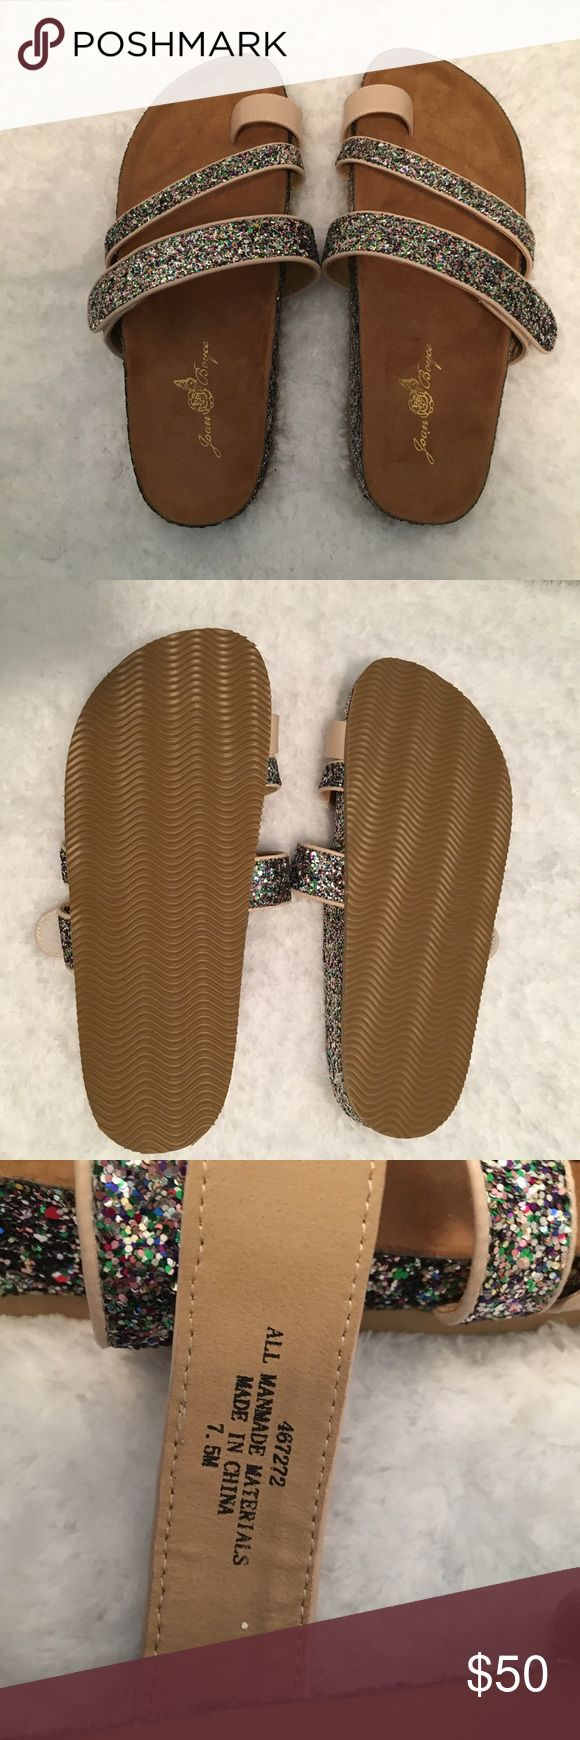 "Joan Boyce ""Mary"" Glitter Comfort Sandals Beautiful multi-colored glitter sandals! 7.5 M. Super comfortable and great for the summer! The strap adjusts to size! Never worn! From HSN Shoes Sandals"